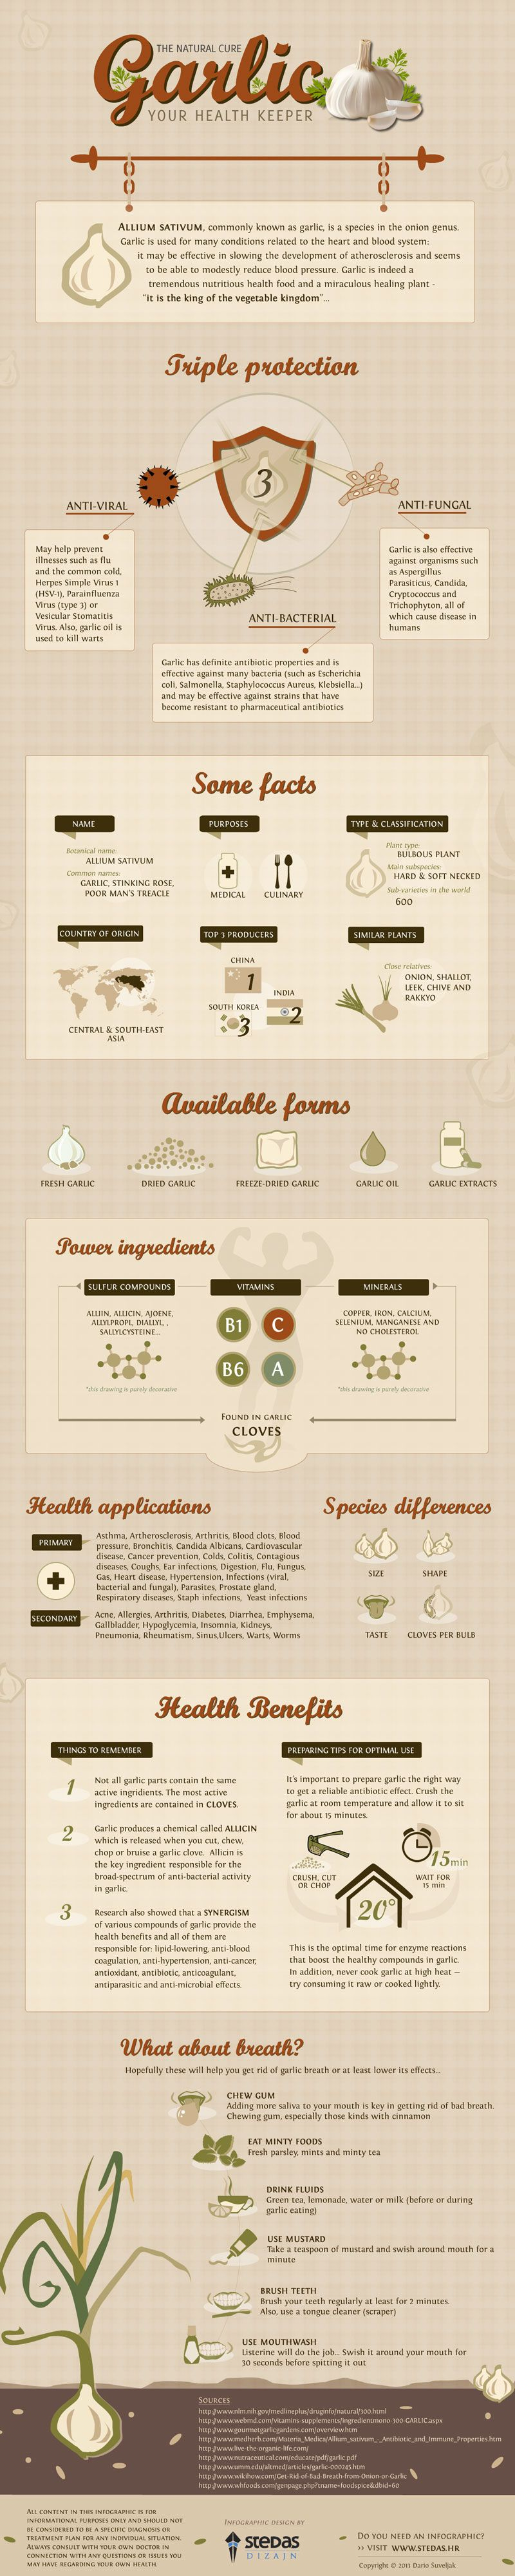 This infographic reveals some surprising facts about garlic    #survivallife www.survivallife.com